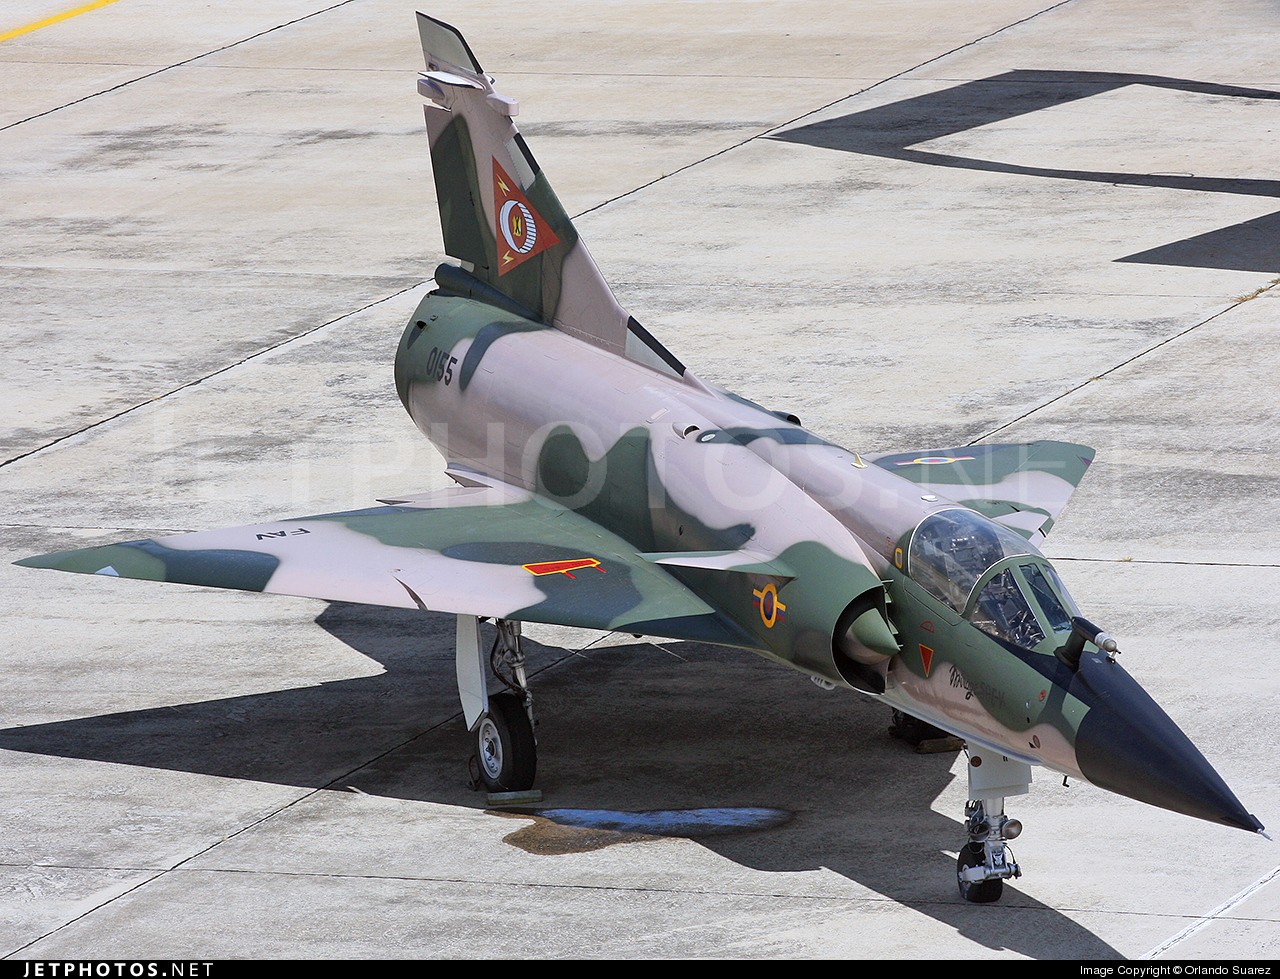 Photo of 0155 Dassault Mirage 50EV by Orlando Suarez